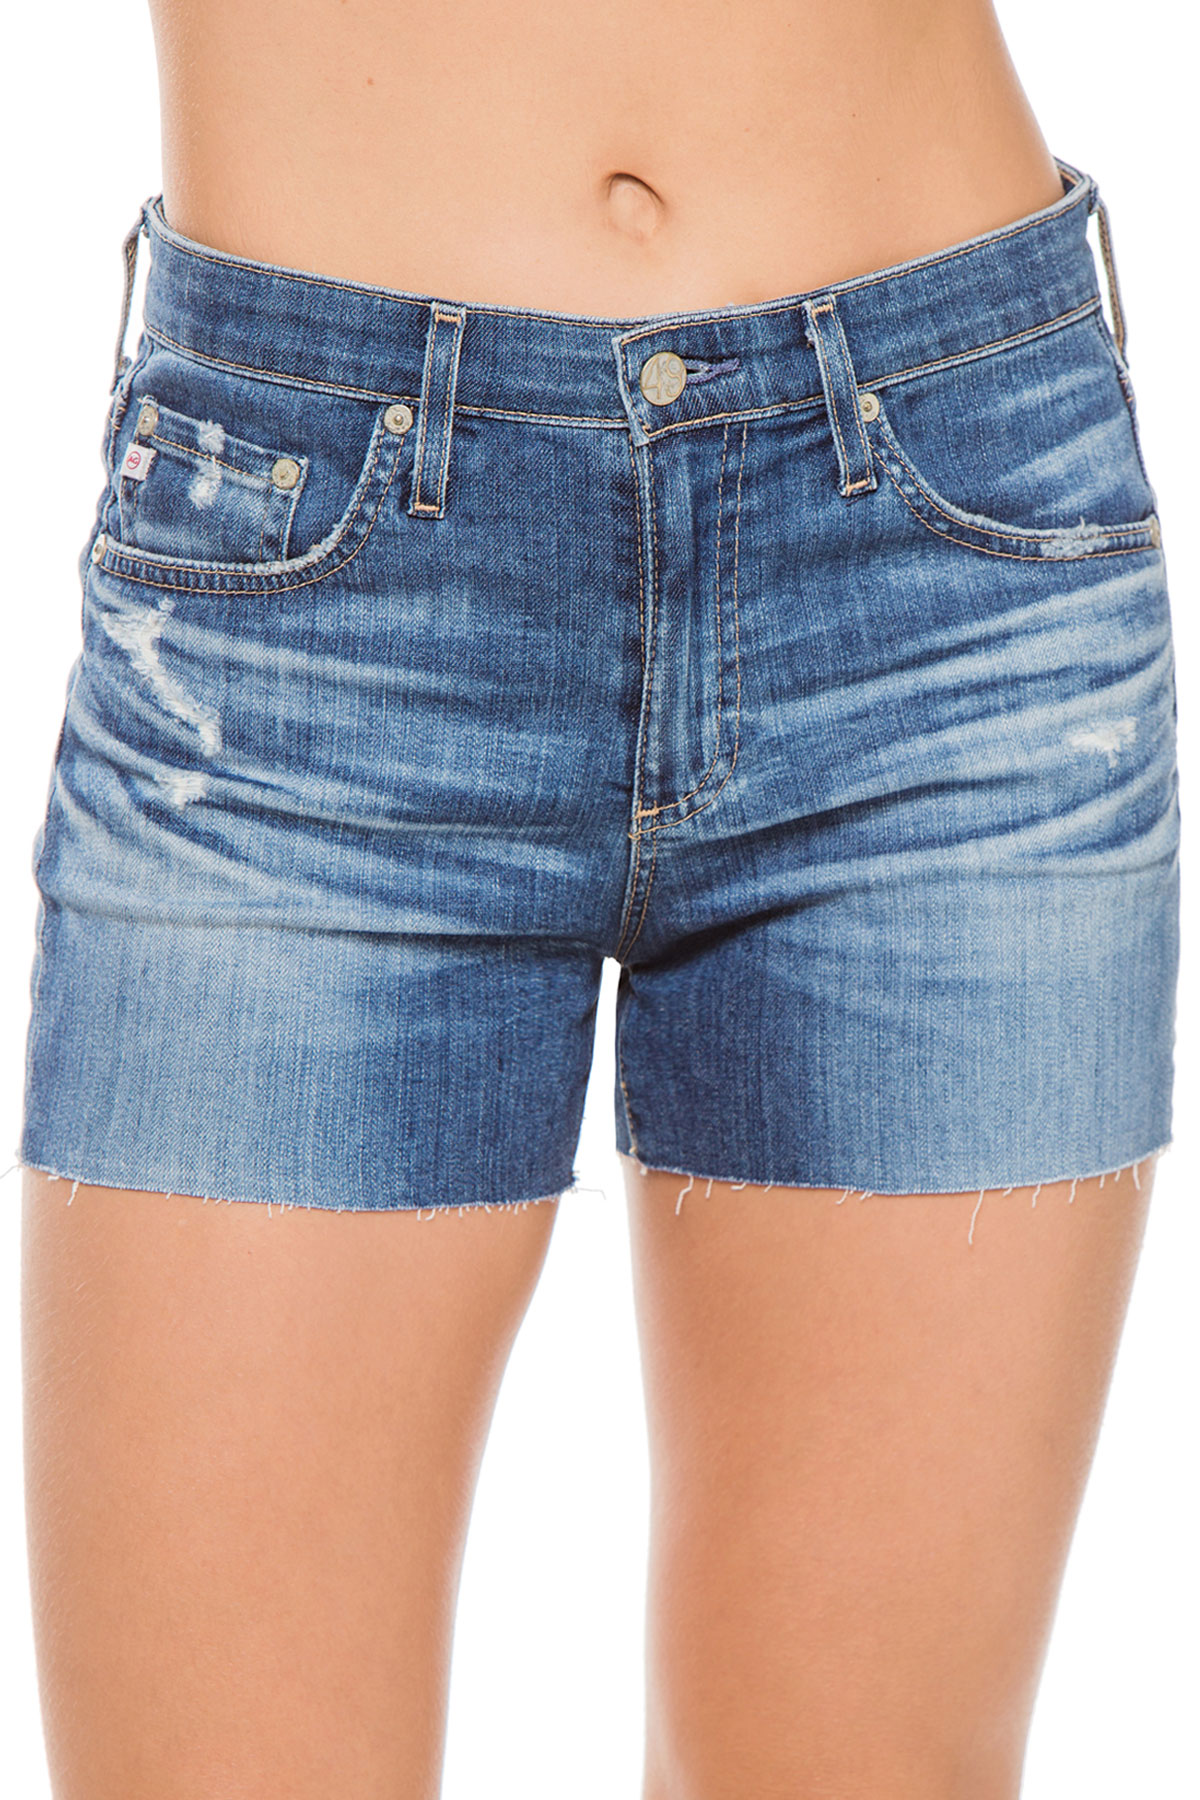 Denim Cut Off Shorts - 15 Years Boundless